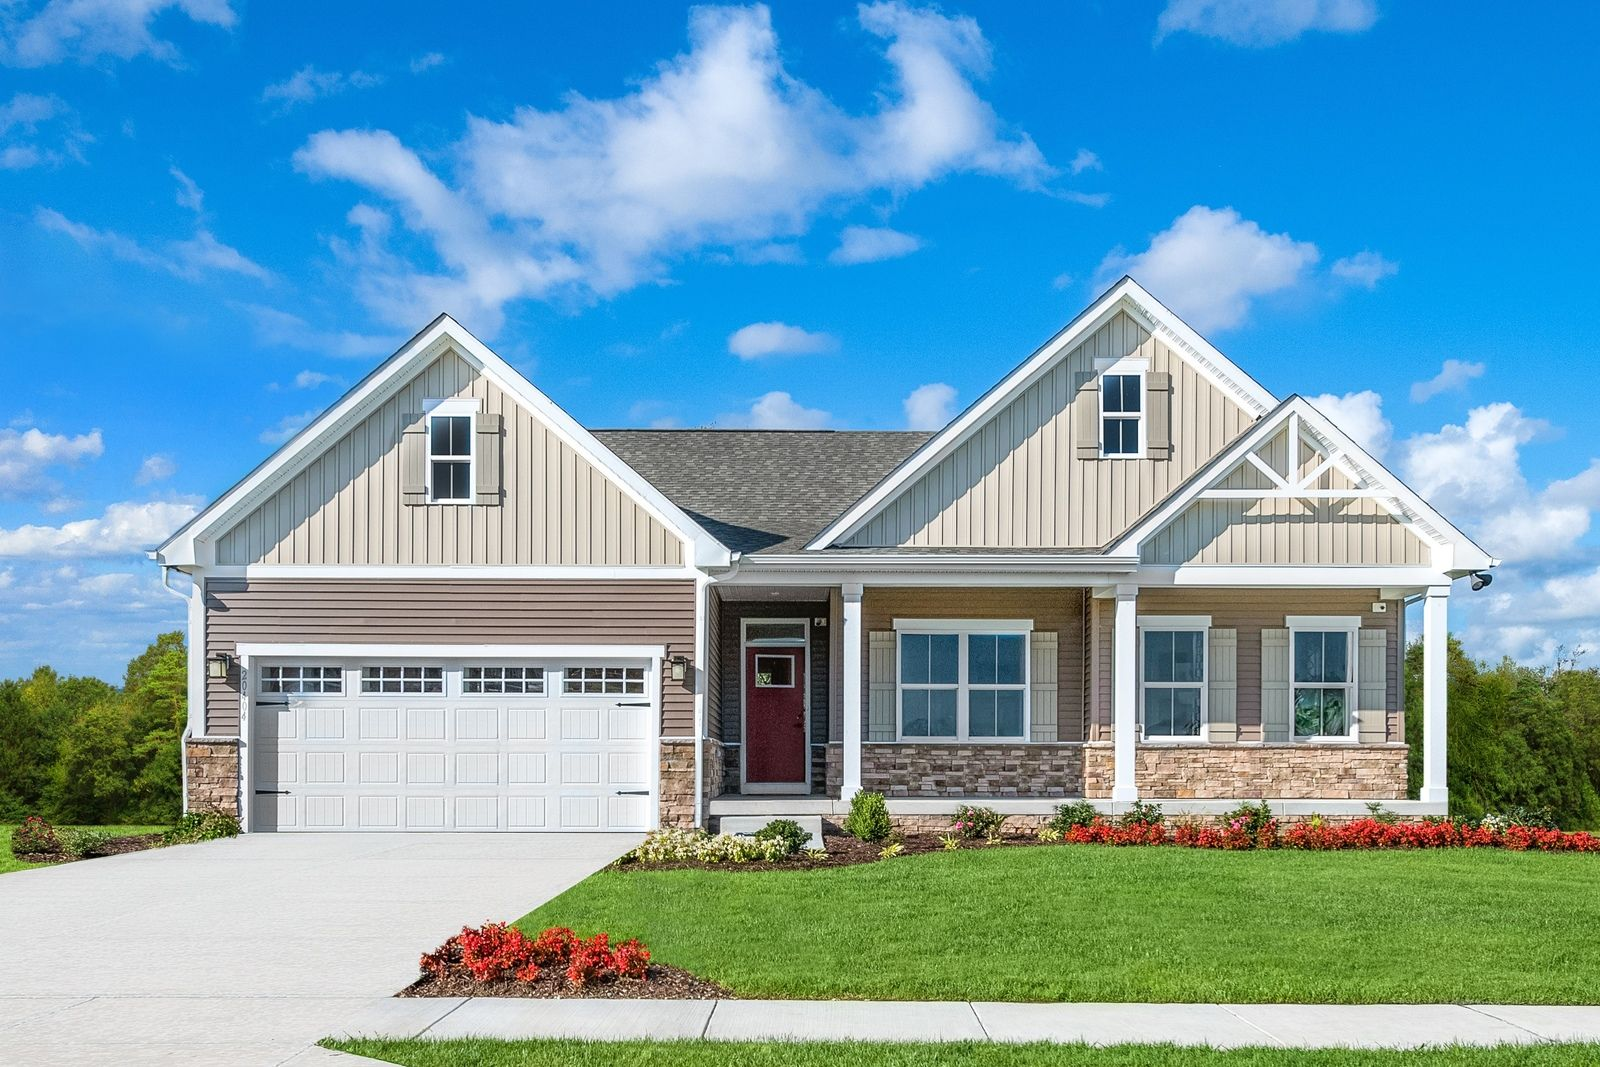 Welcome home to Holston Hills - Ranch Homes at 146th & Gray:Build your dream home — a gorgeous ranch with Craftsman style exteriors and included full basements, in the highly sought-after location minutes from Carmel & Fishers!Schedule avisit today!